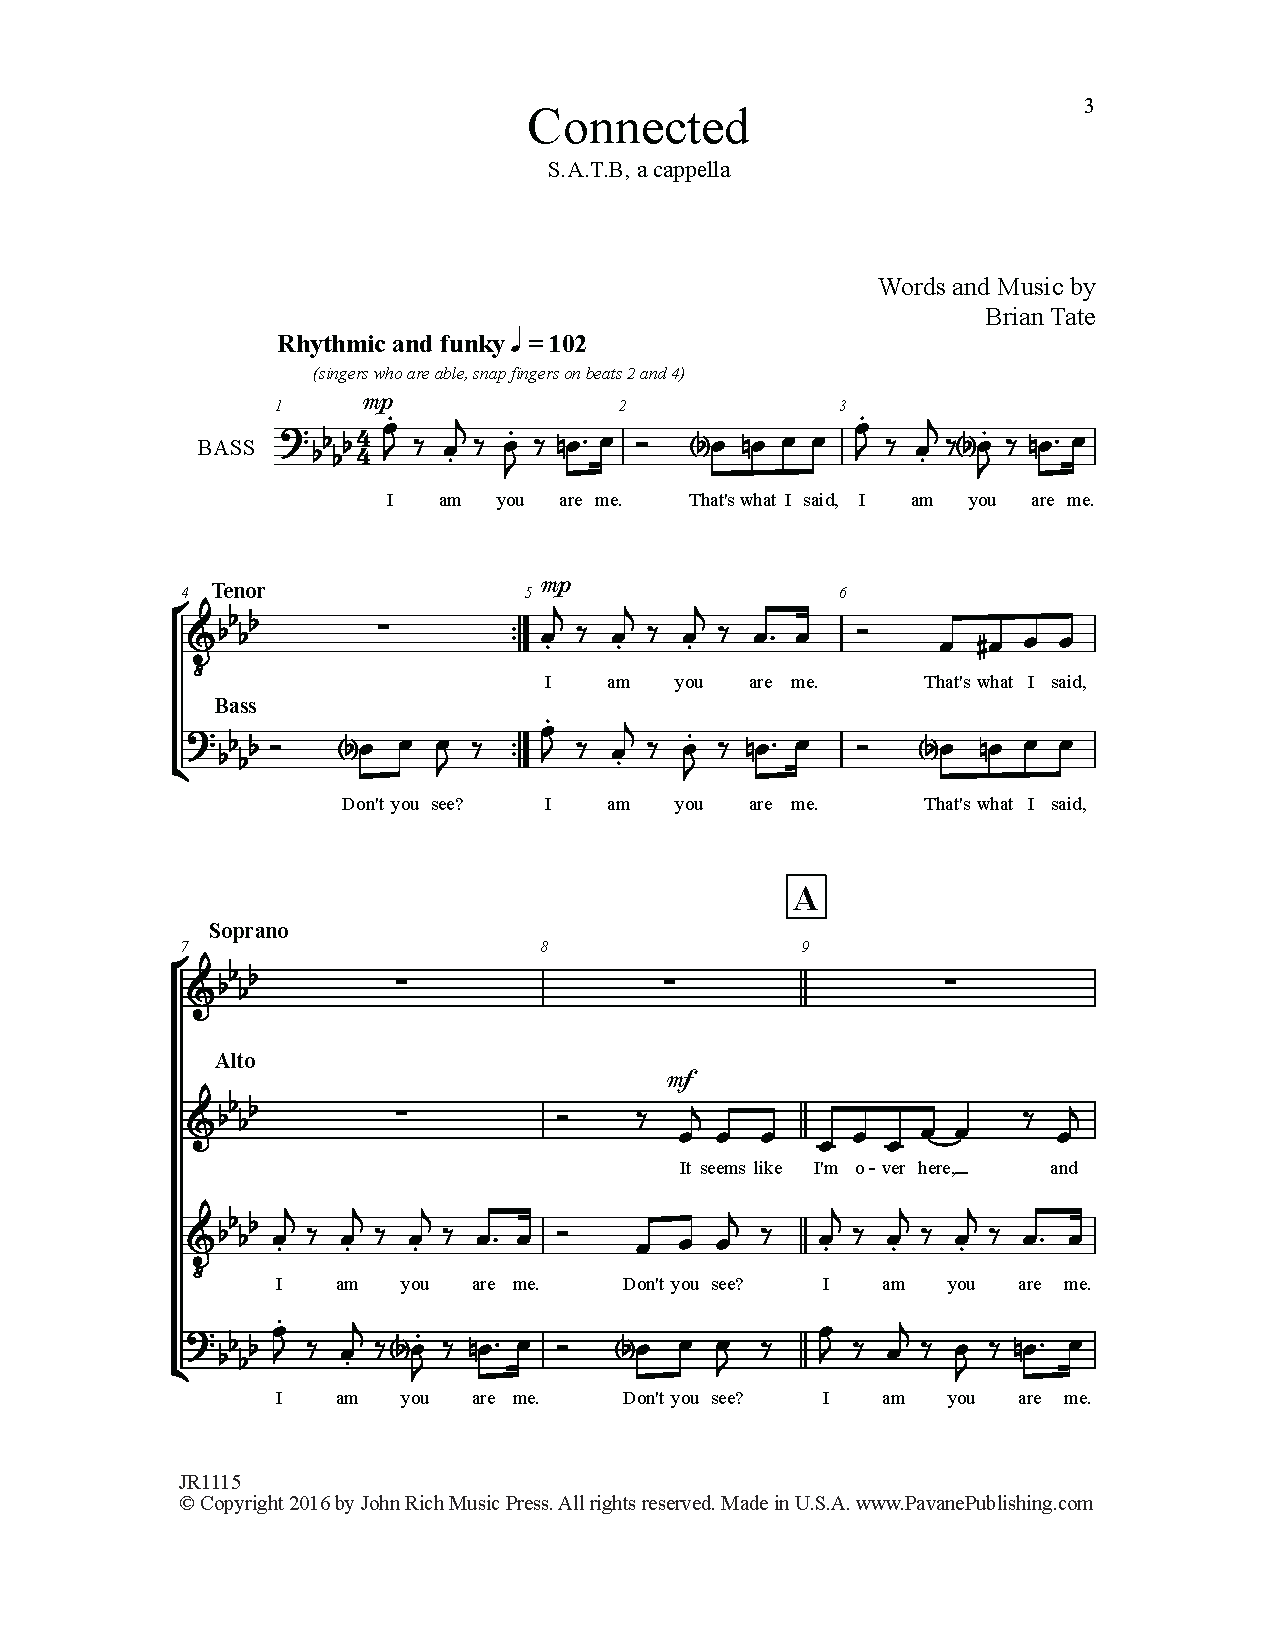 Brian Tate Connected sheet music notes and chords. Download Printable PDF.